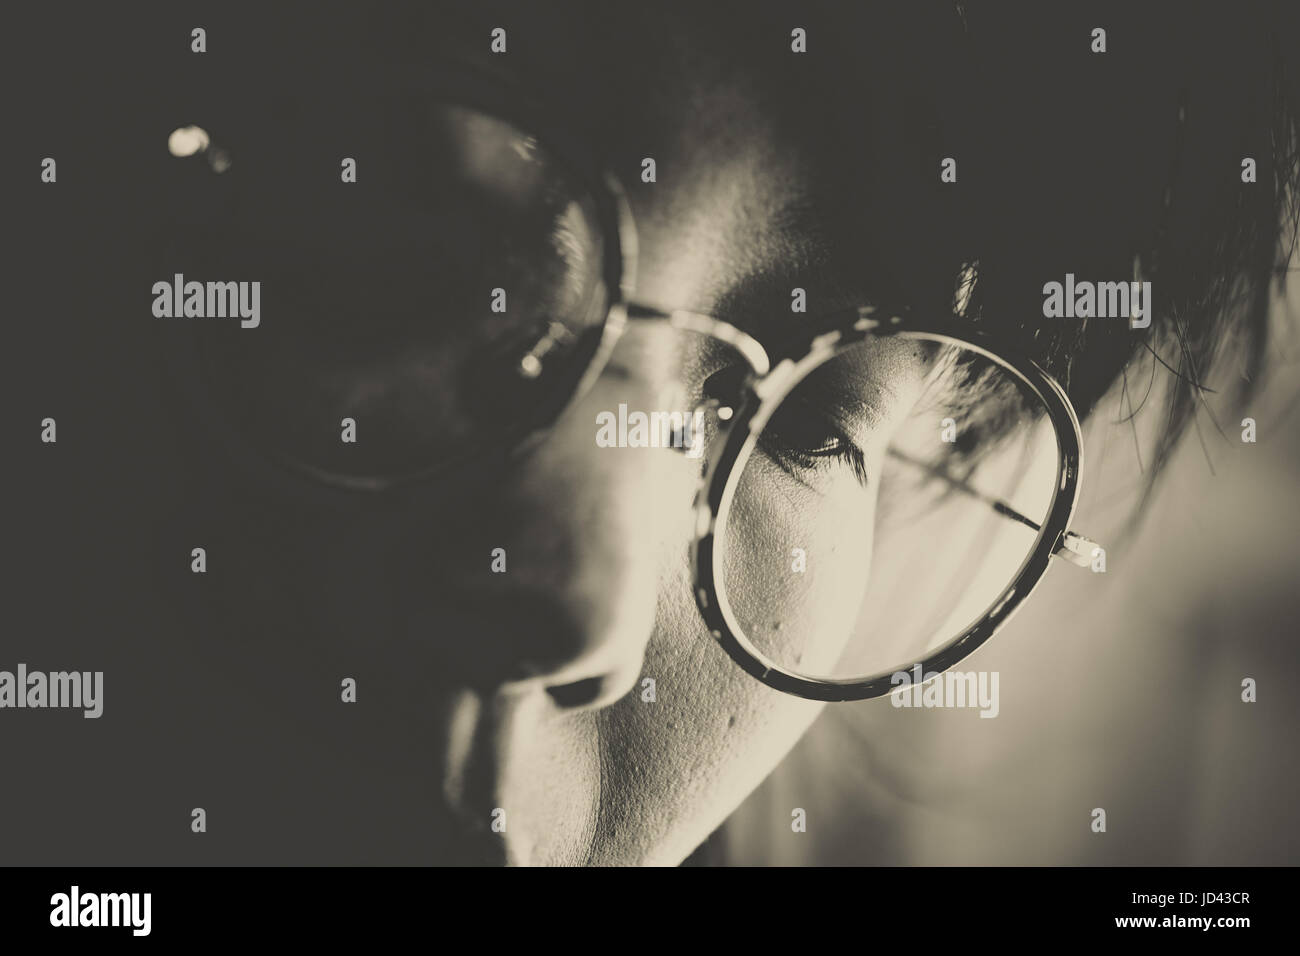 Headshot of women with round glasses looking downward concentrate on somethings in sepia color. - Stock Image